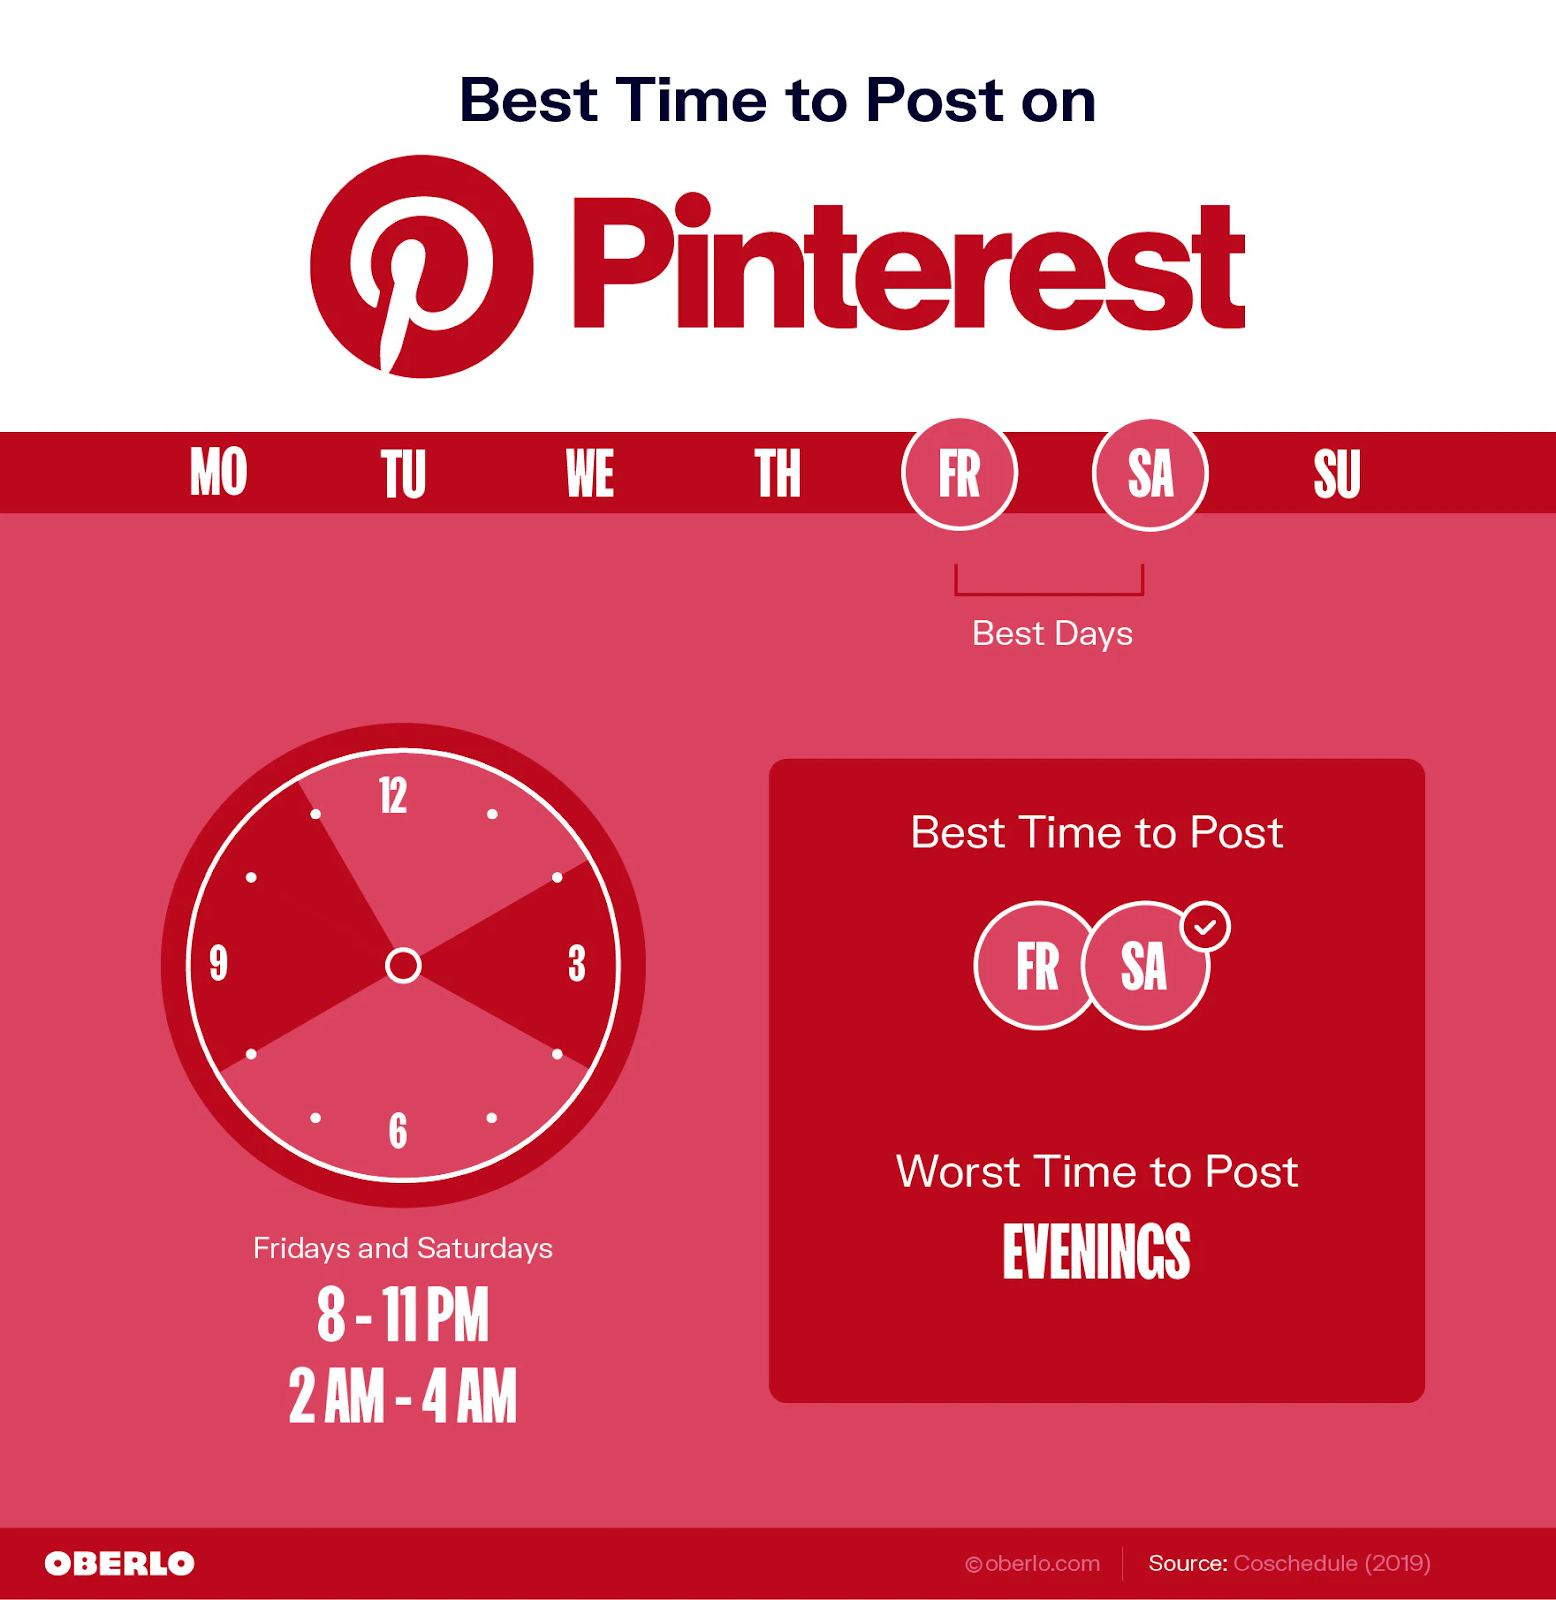 Oberlo stats on best times to post on Pinterest in 2021